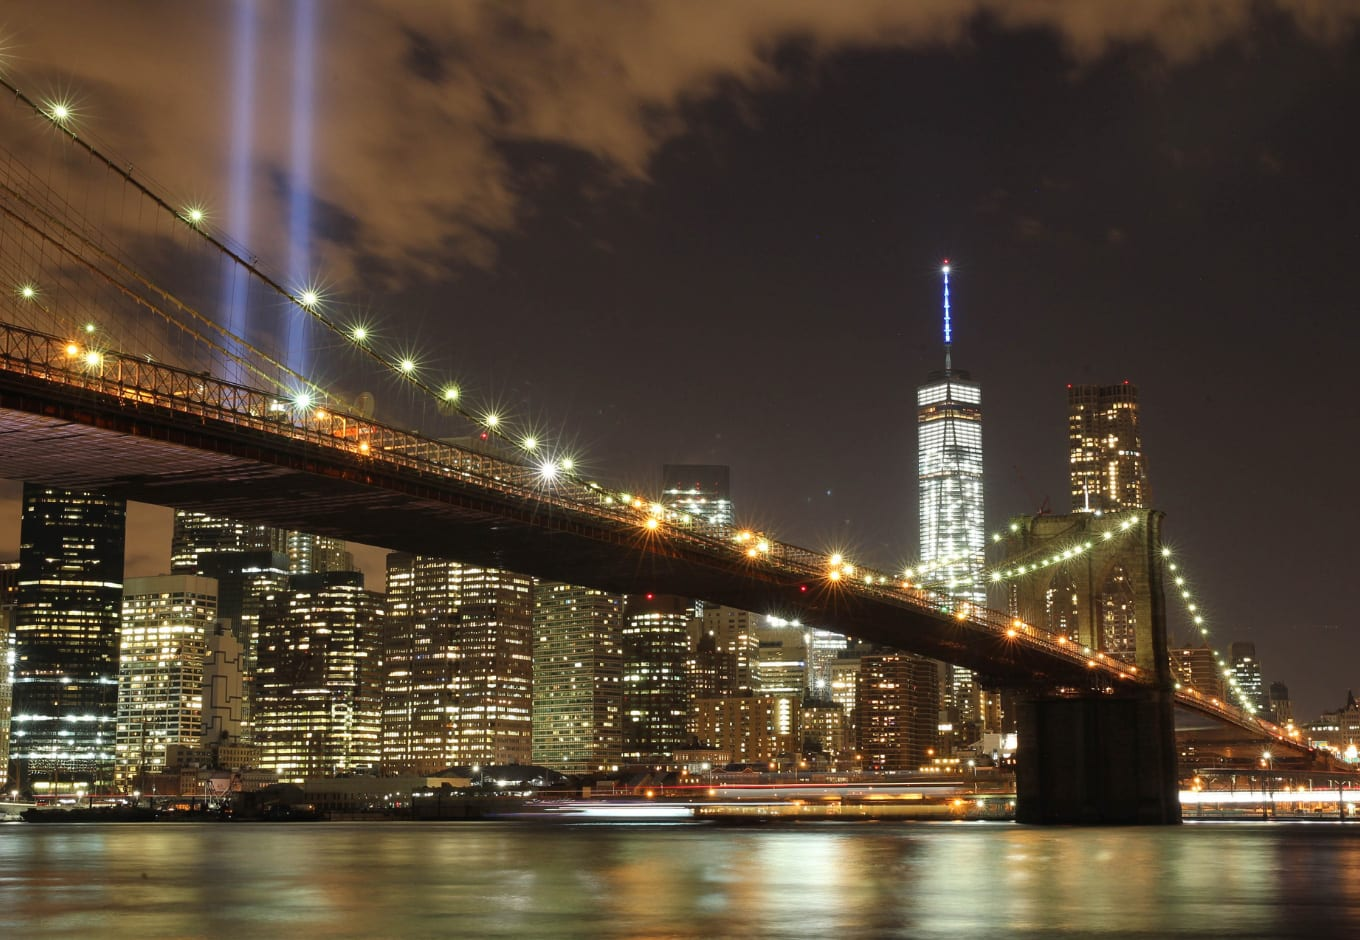 Brooklyn Bridge is among popular outdoors free things to do in NYC